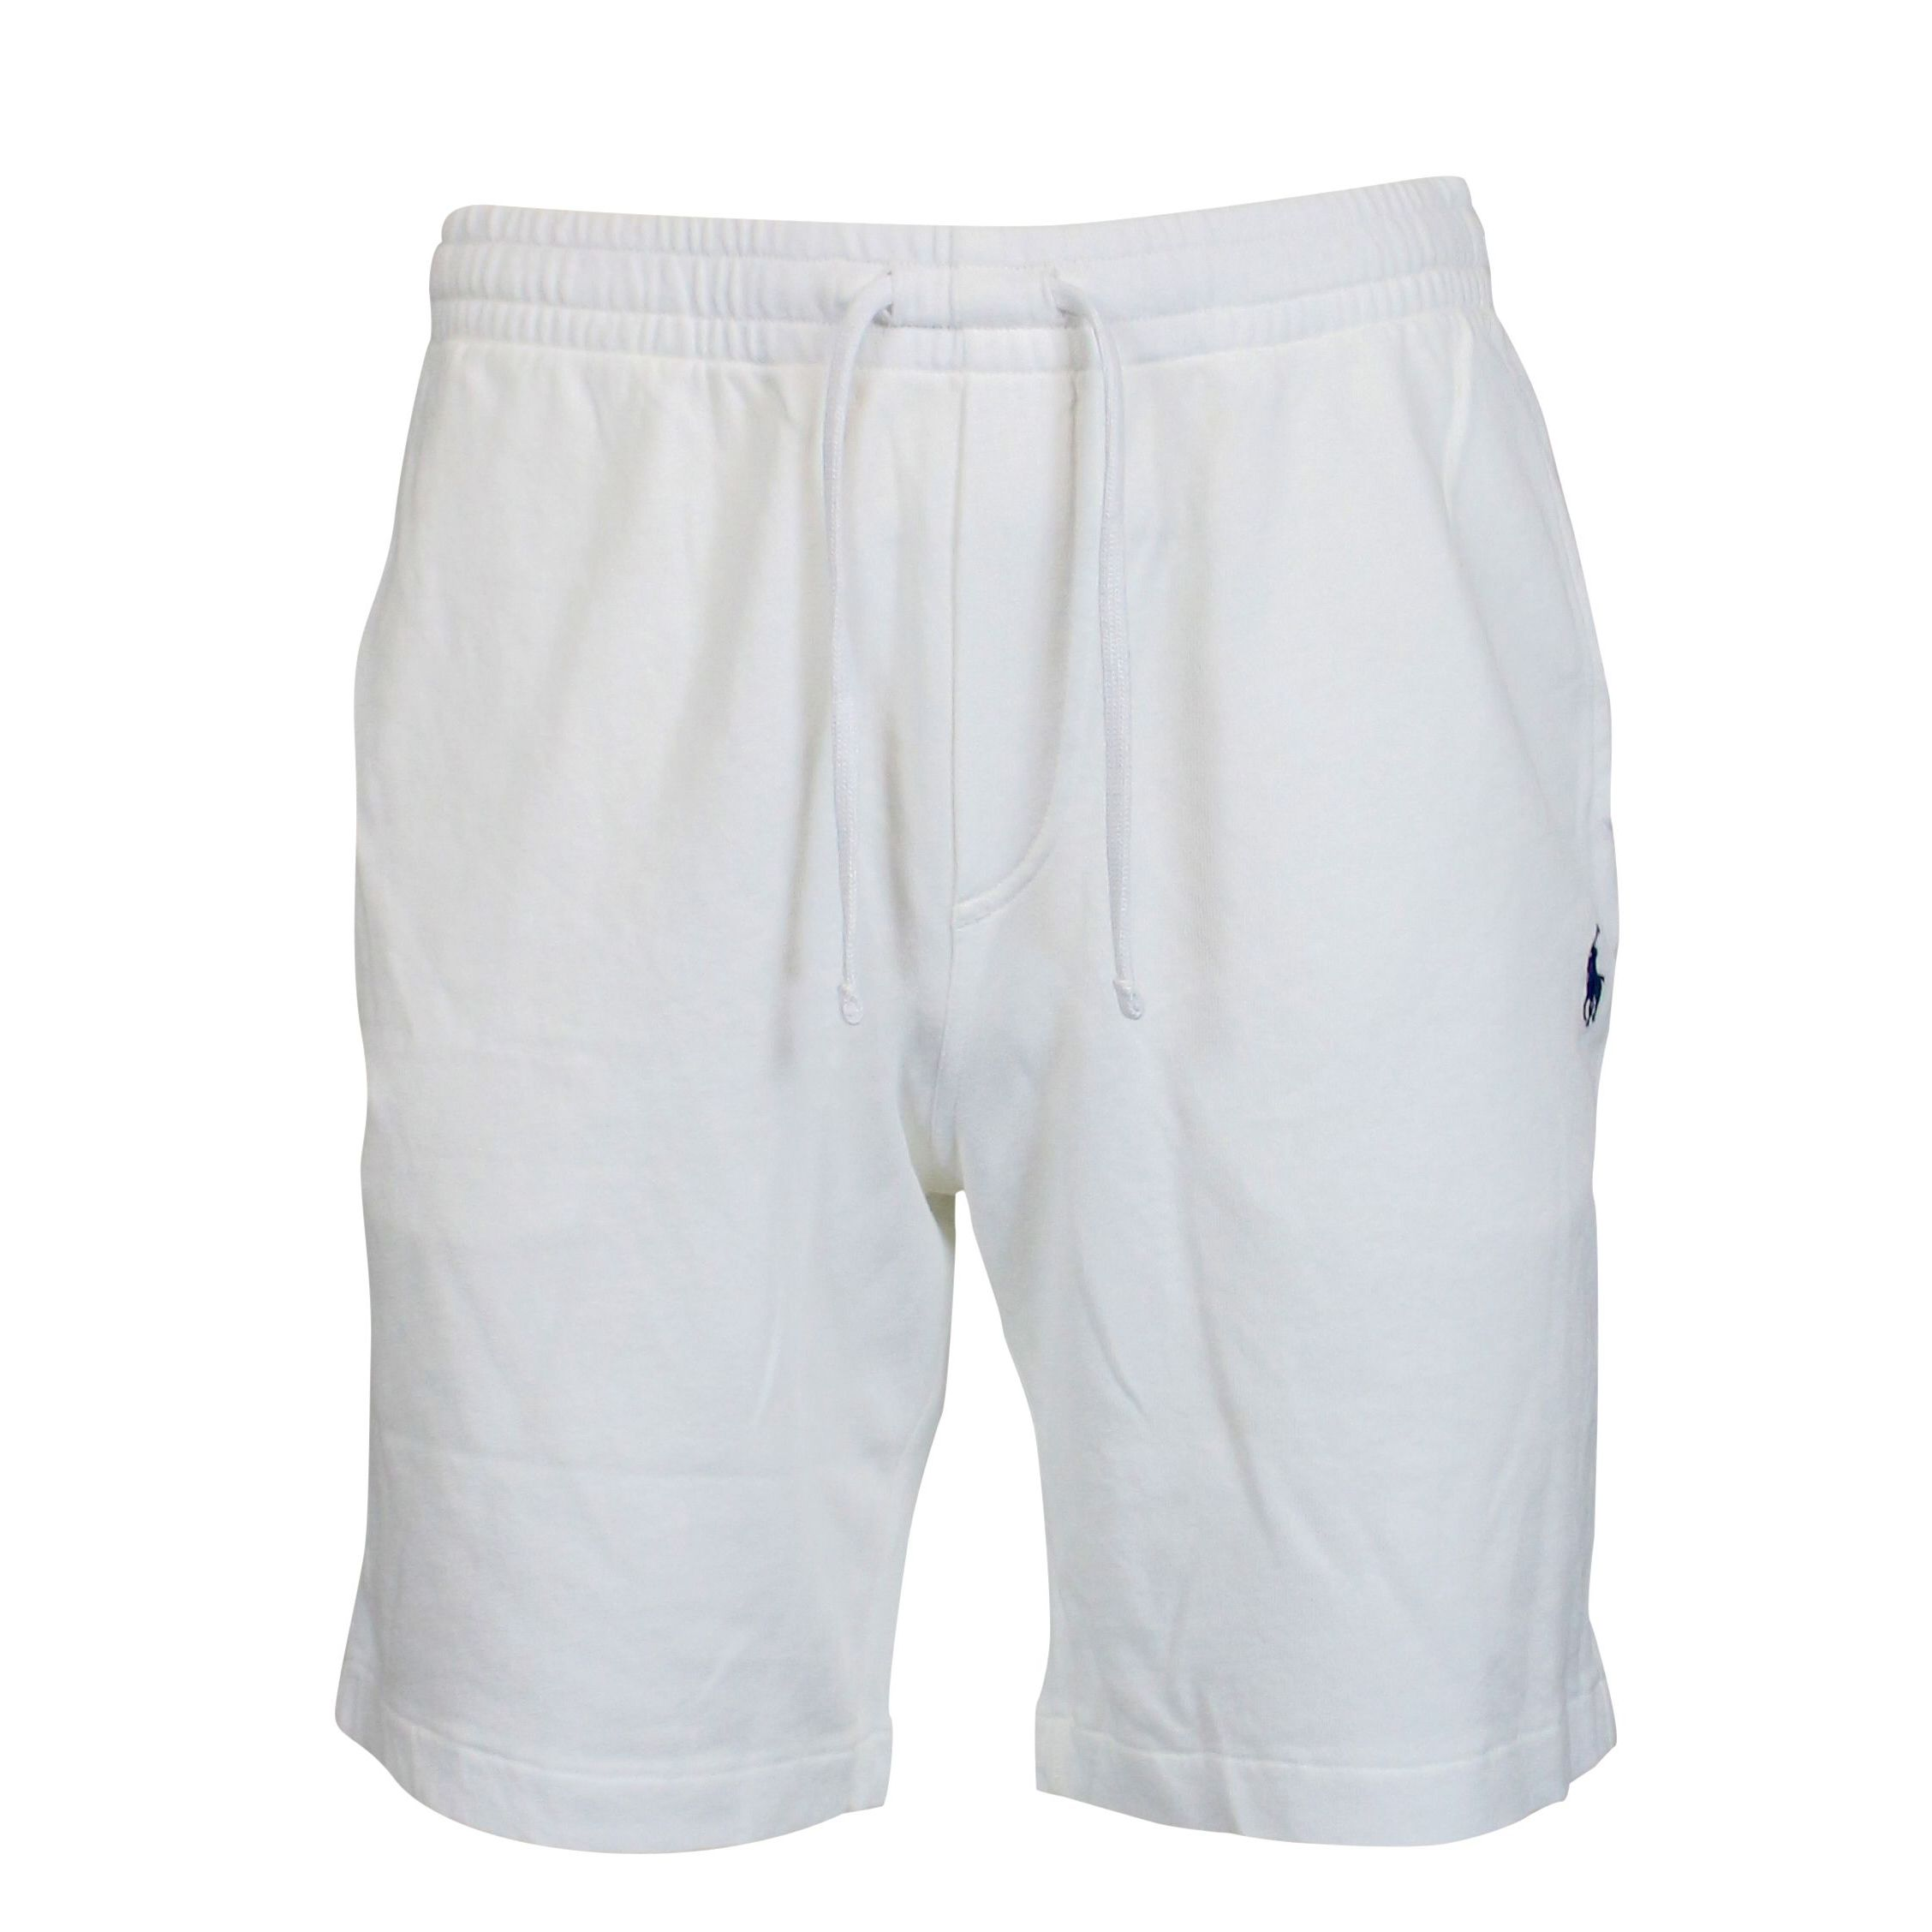 With Drawstring Bermuda In Cotton With Drawstring In Cotton In With Cotton Bermuda Bermuda OXuPZik